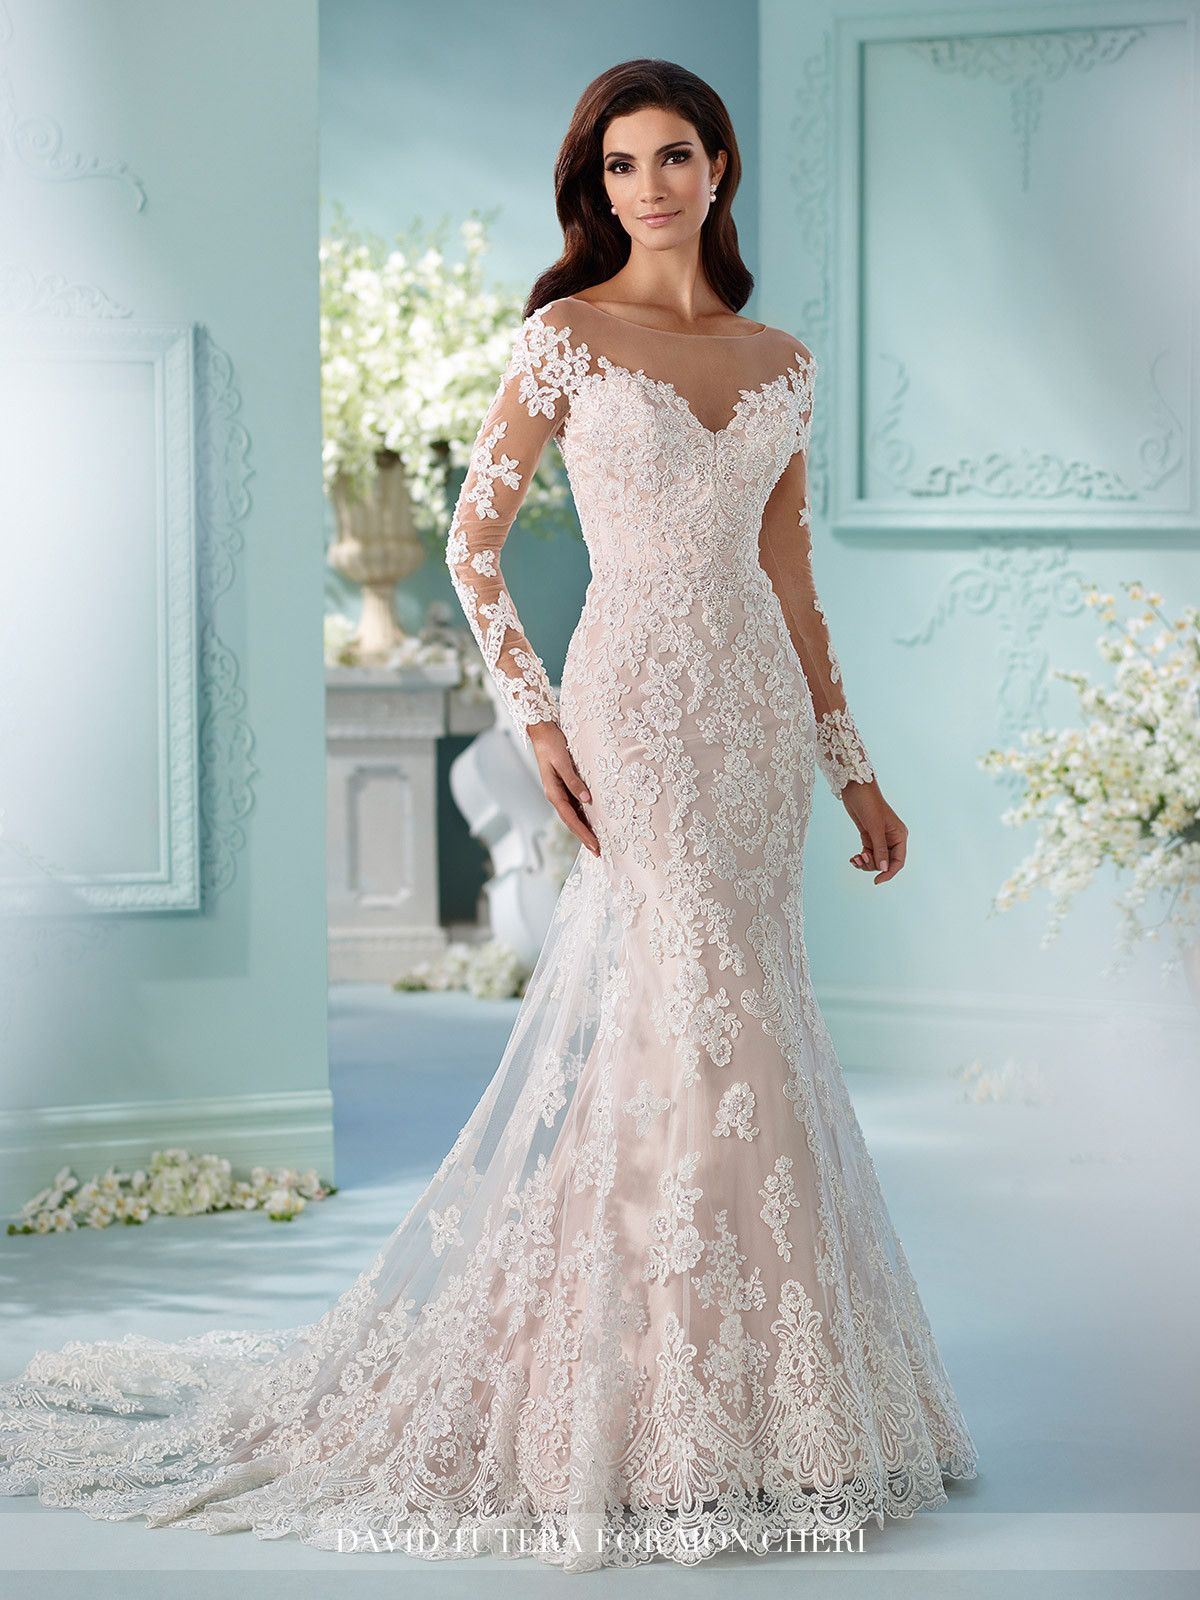 David Tutera - Maisie - 216239 - All Dressed Up, Bridal Gown